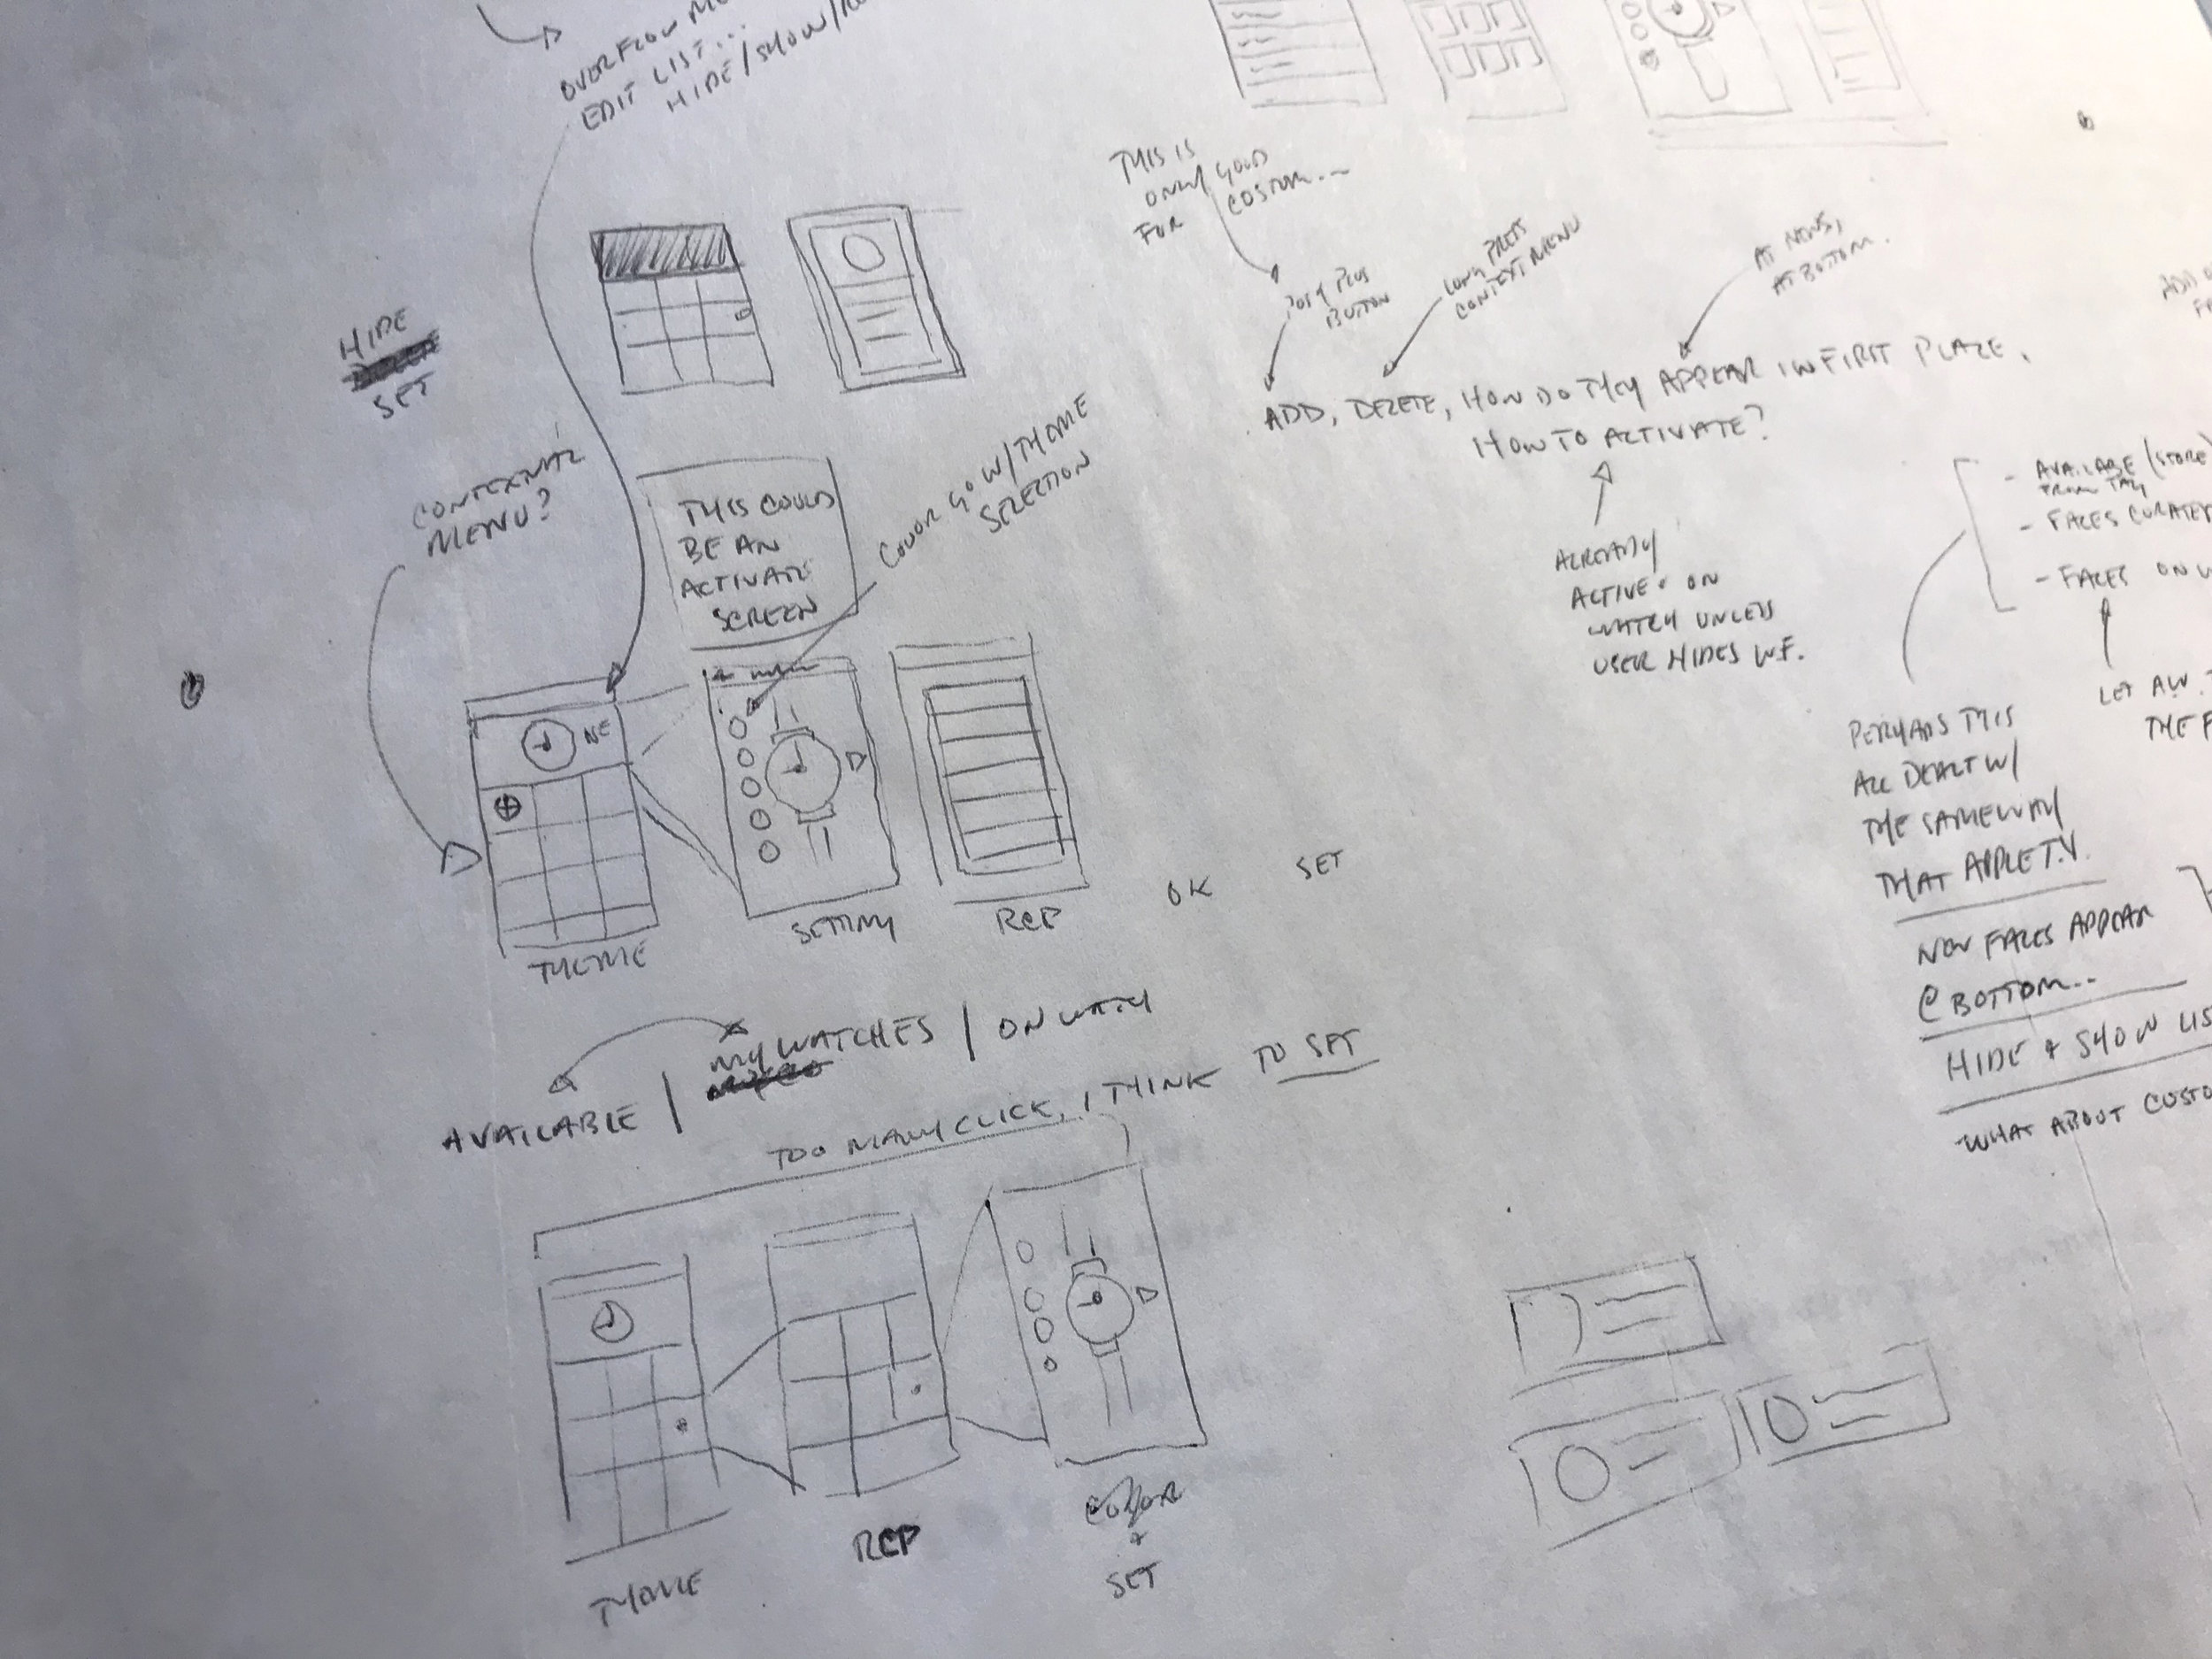 Early sketches for the mobile app